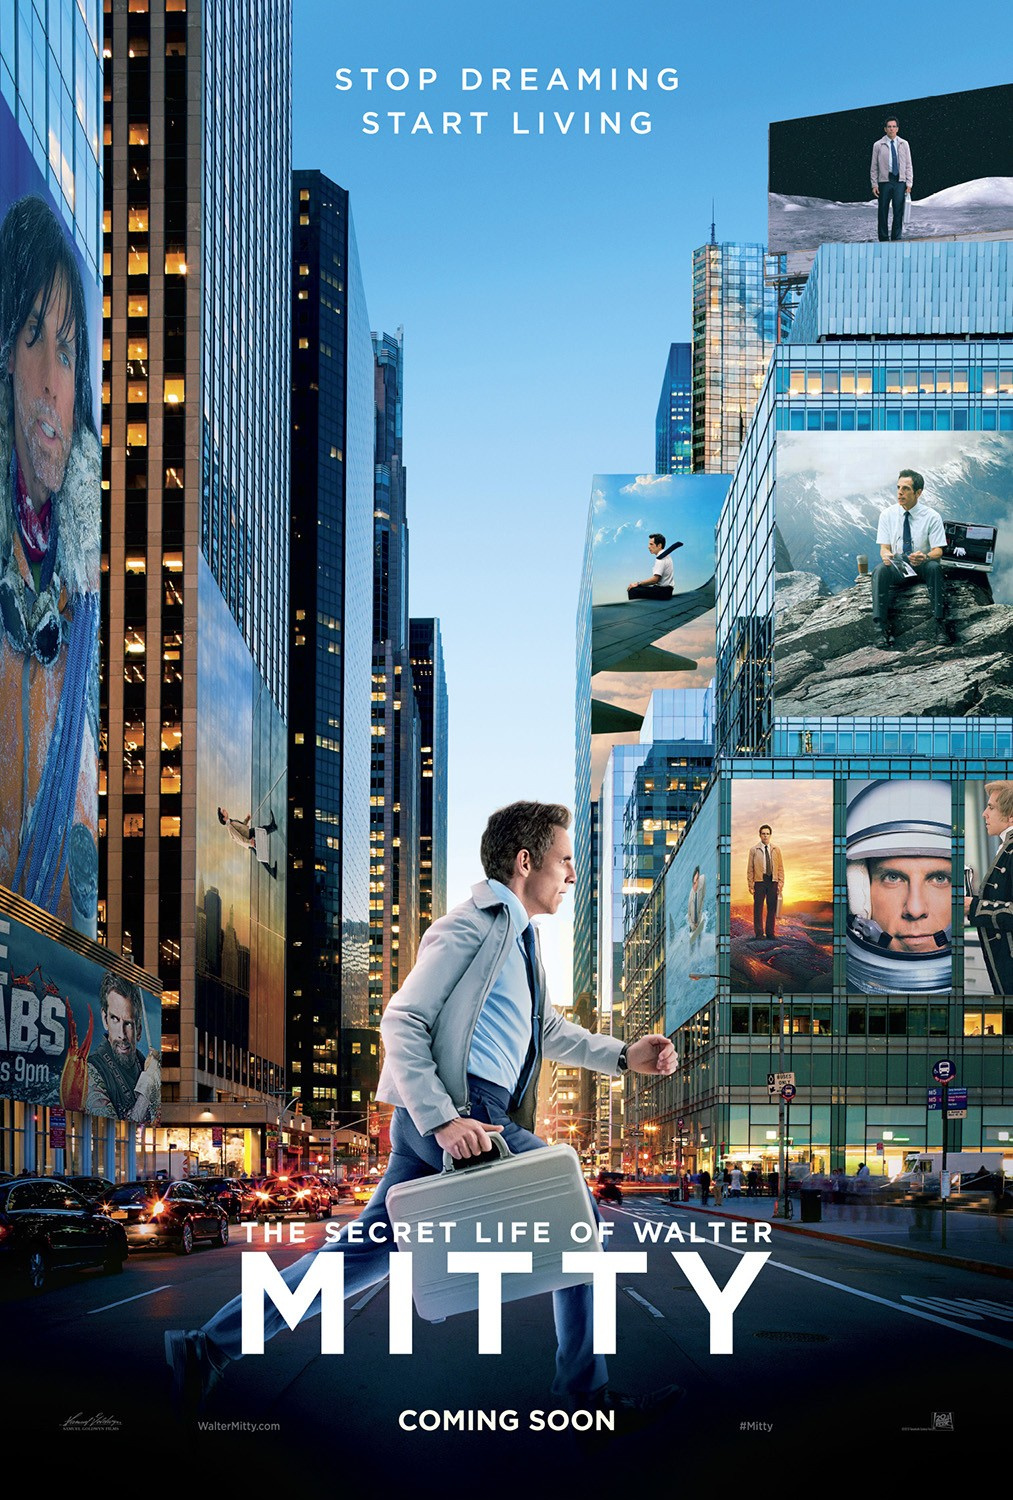 inews_The-Secret-Life-of-Walter-Mitty_poster_20nov13